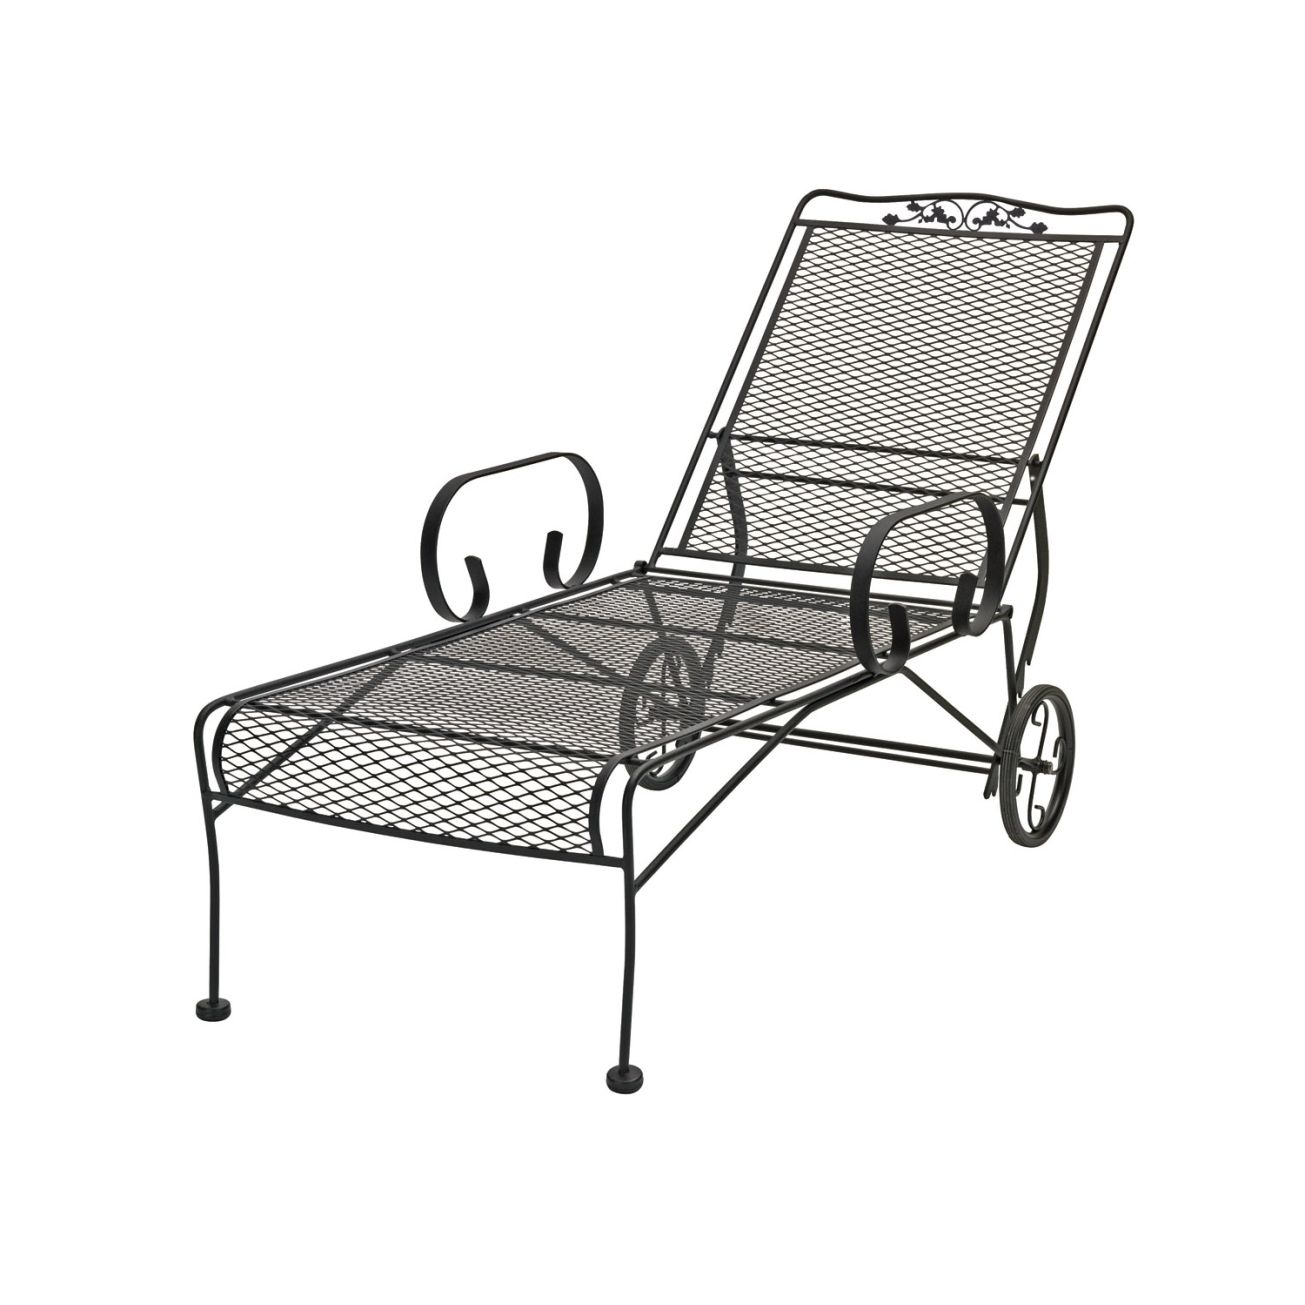 Iron Chaise Lounges Intended For Recent Outdoor : Lowes Patio Furniture Clearance Plastic Lounge Chairs (View 4 of 15)